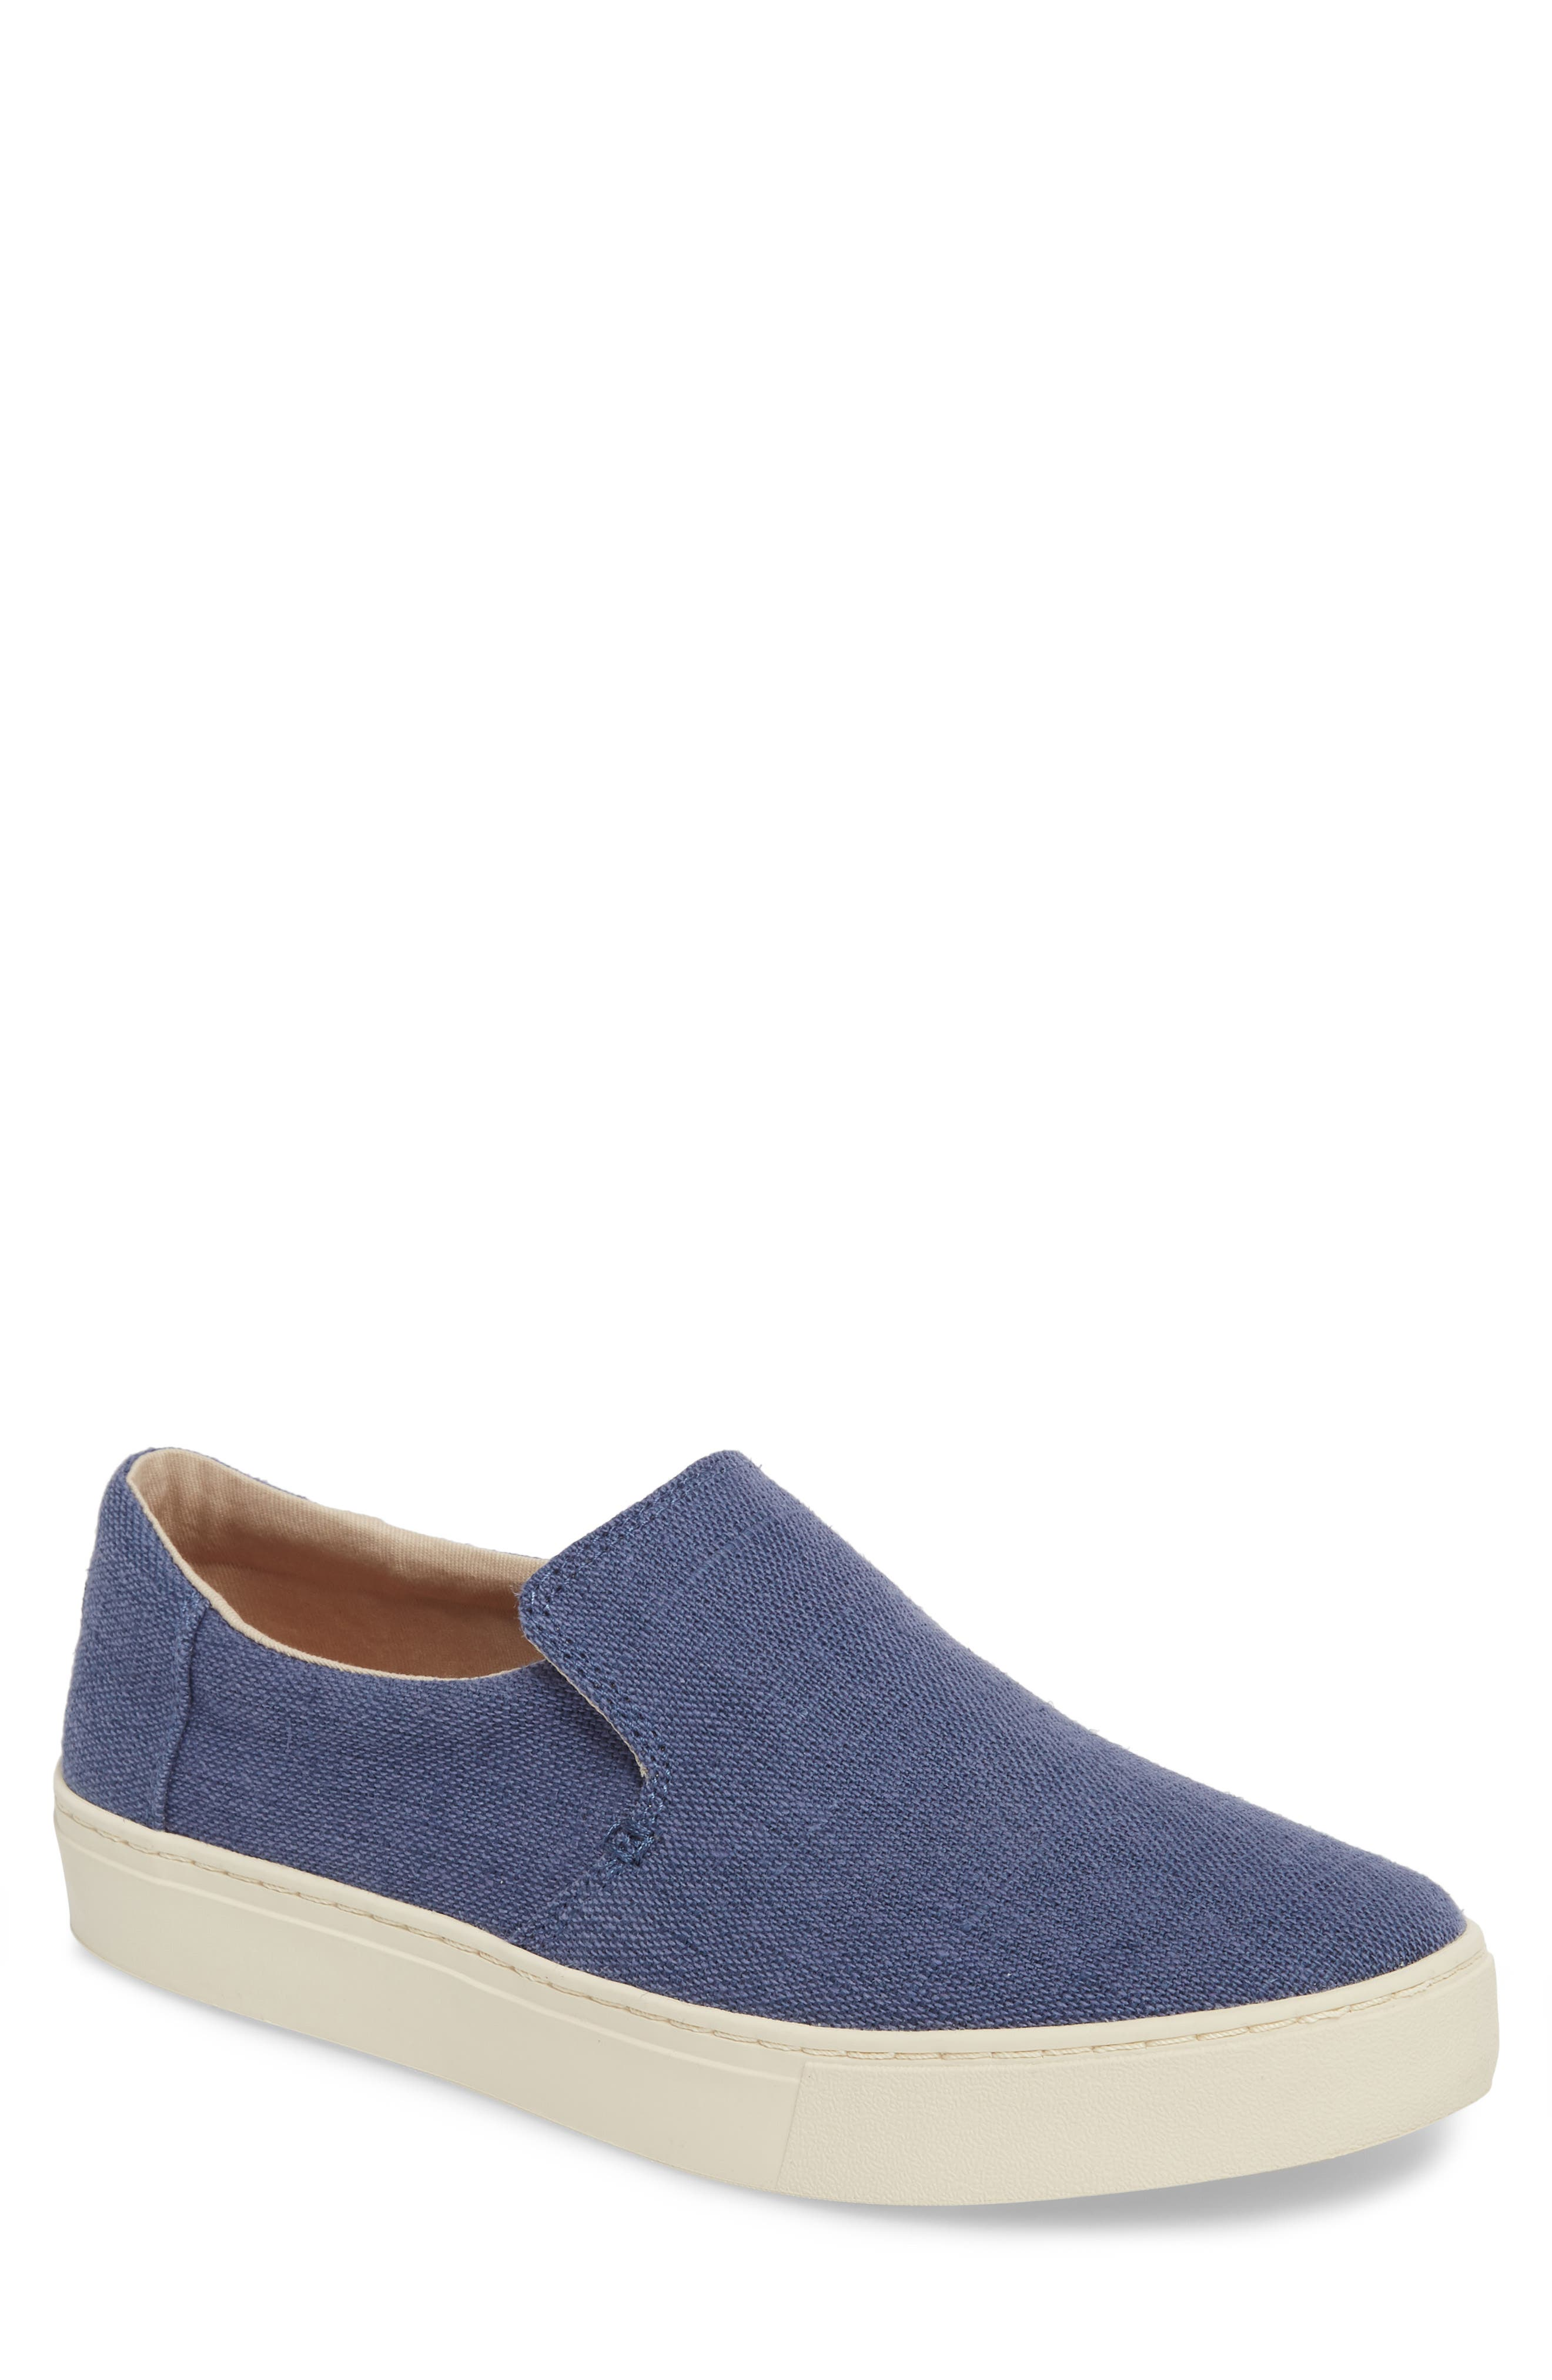 TOMS Loma Slip-On Sneaker, Main, color, CADET BLUE HERITAGE CANVAS